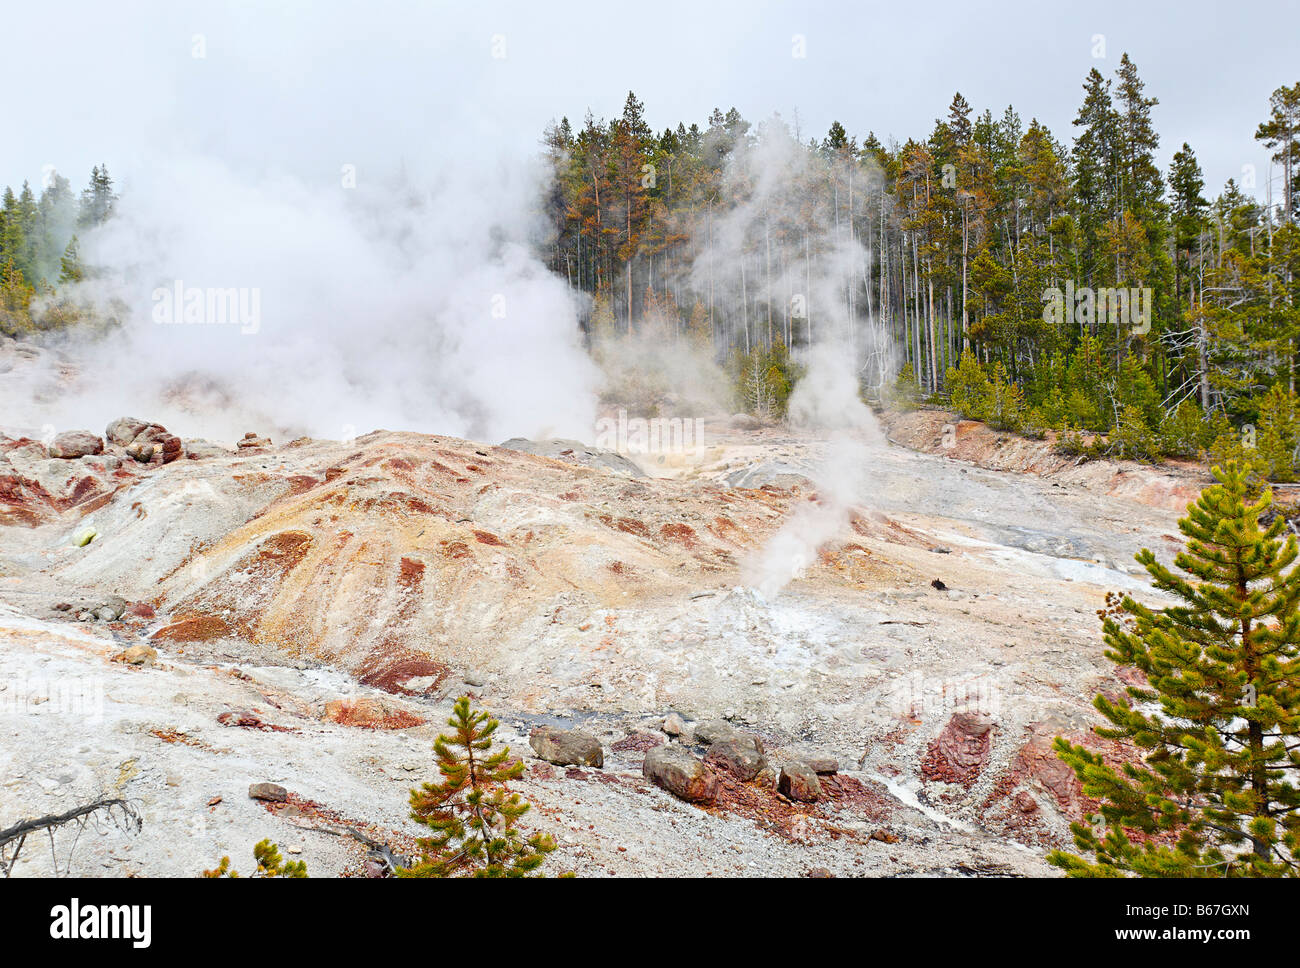 A hillside geyser erupting full of steam in Yellowstone National Park - Stock Image